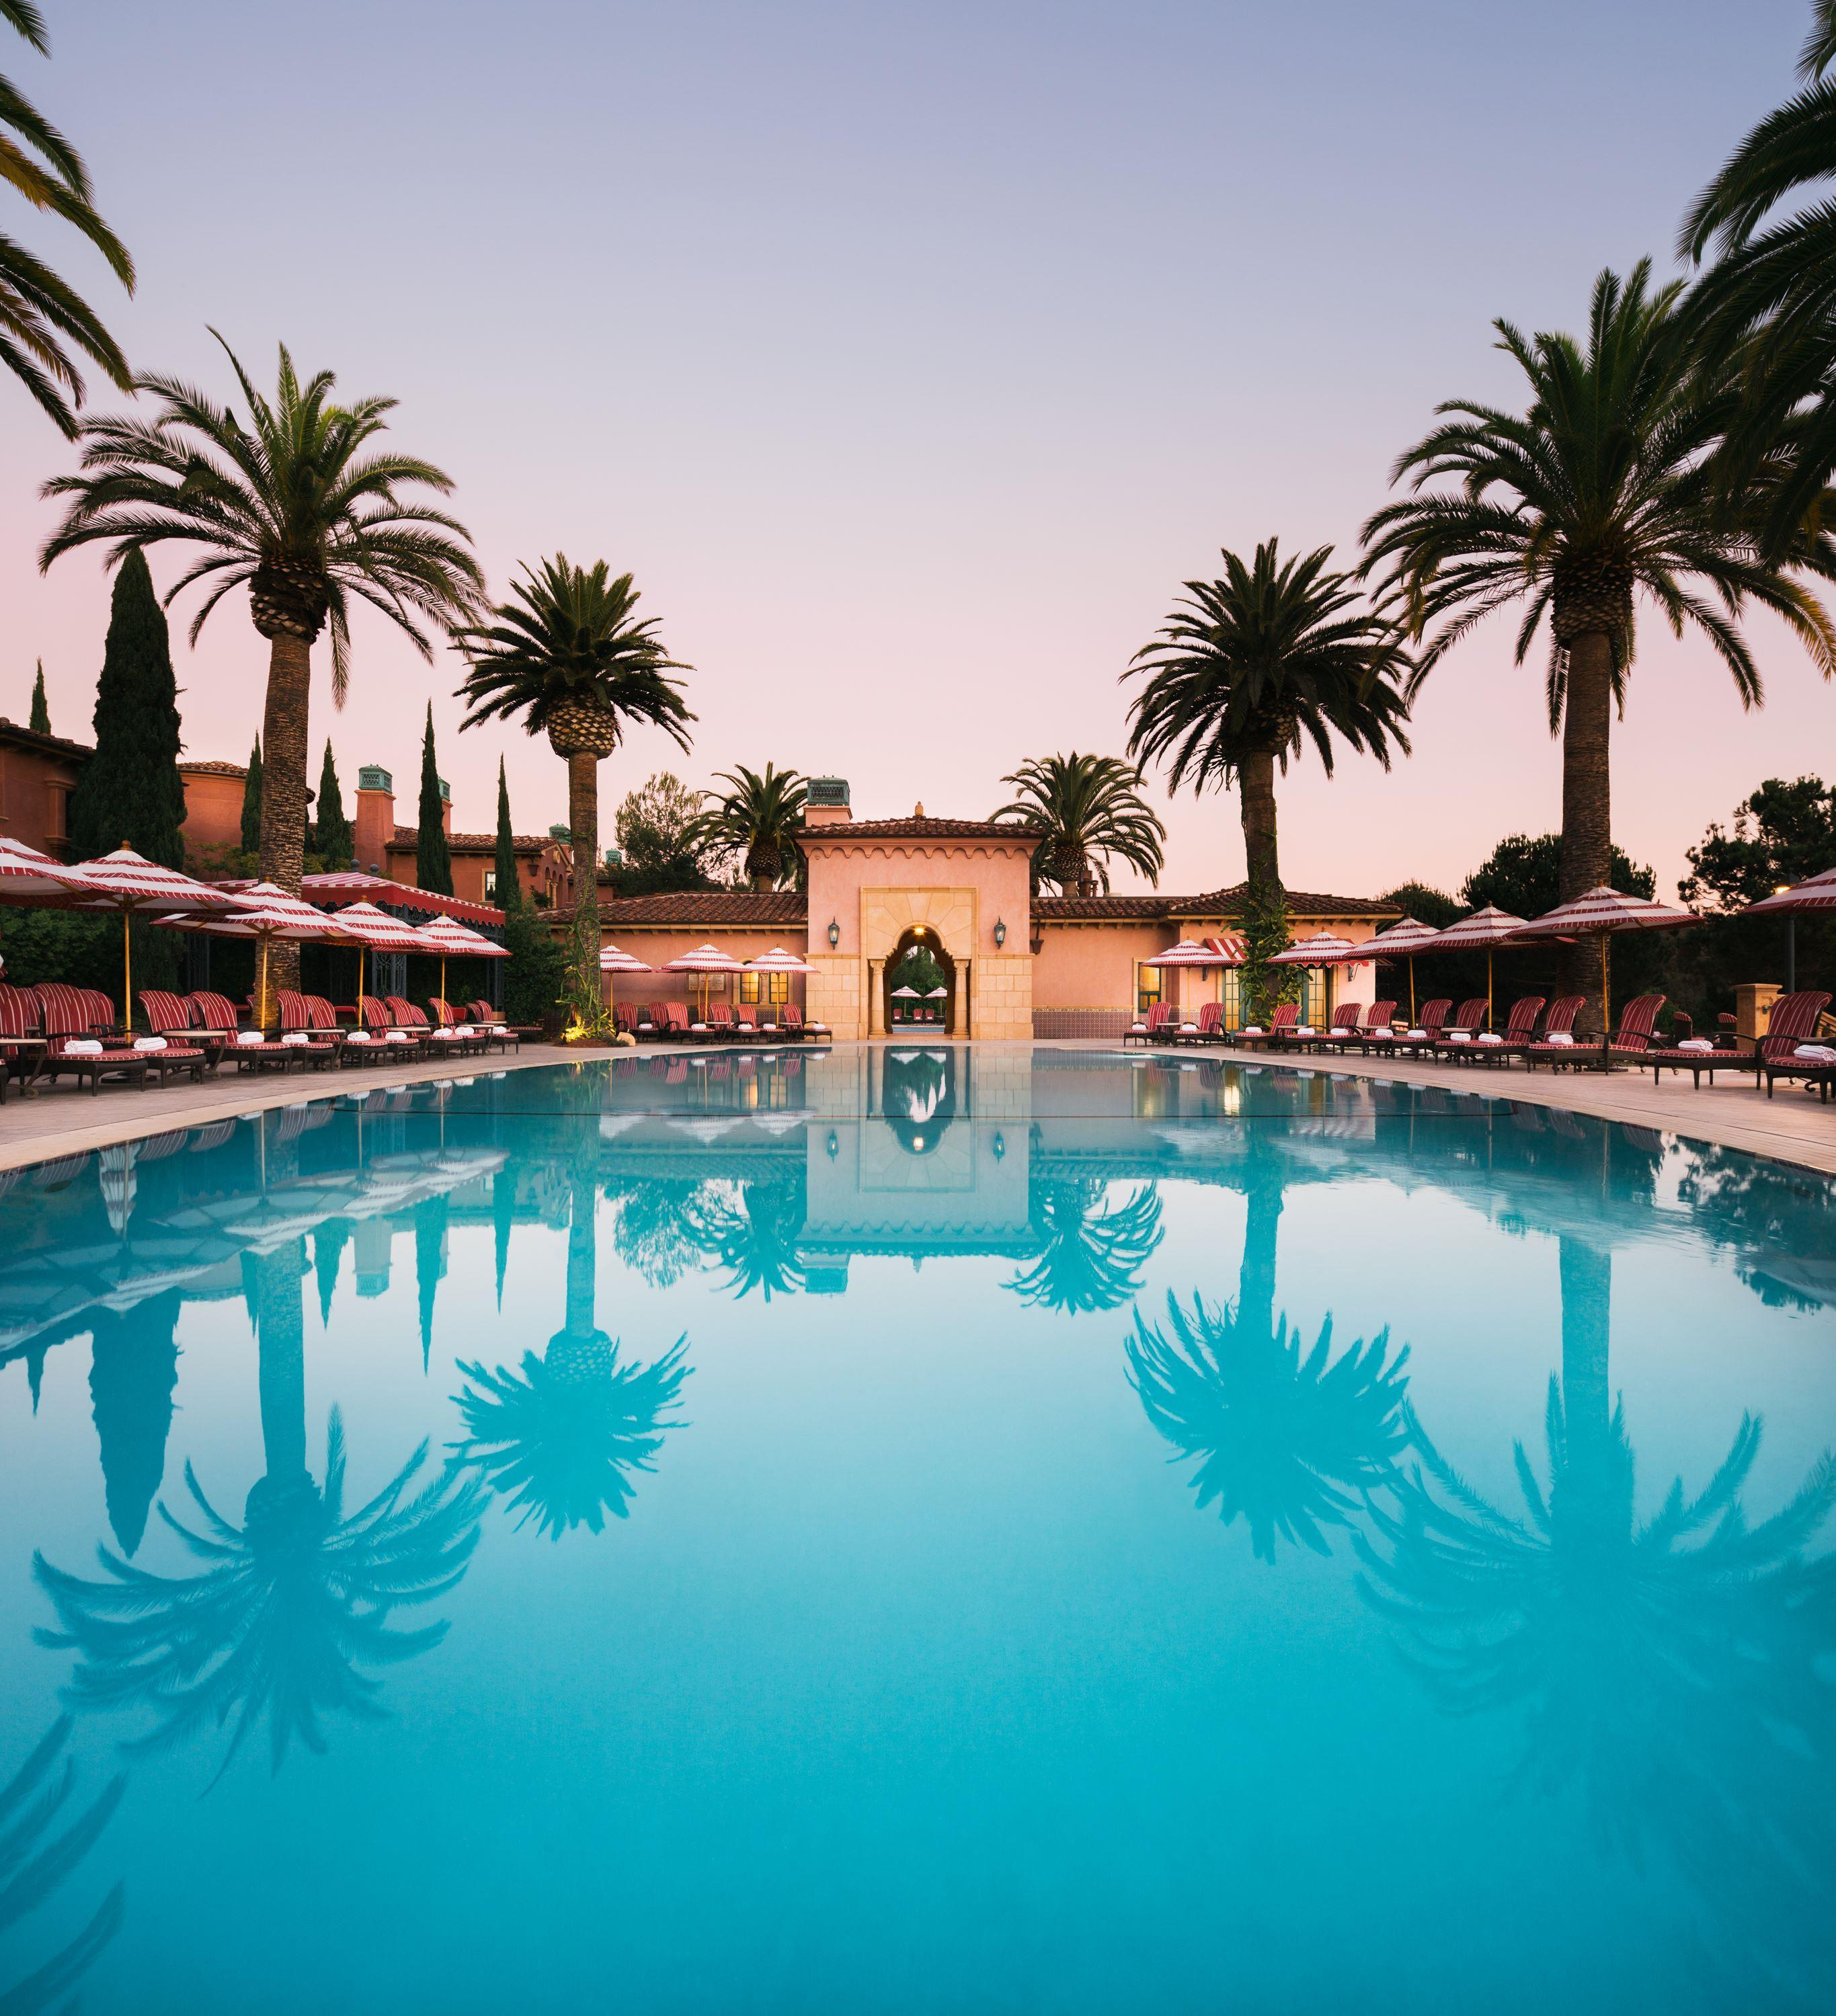 Fairmont Grand Del Mar (San Diego, USA)